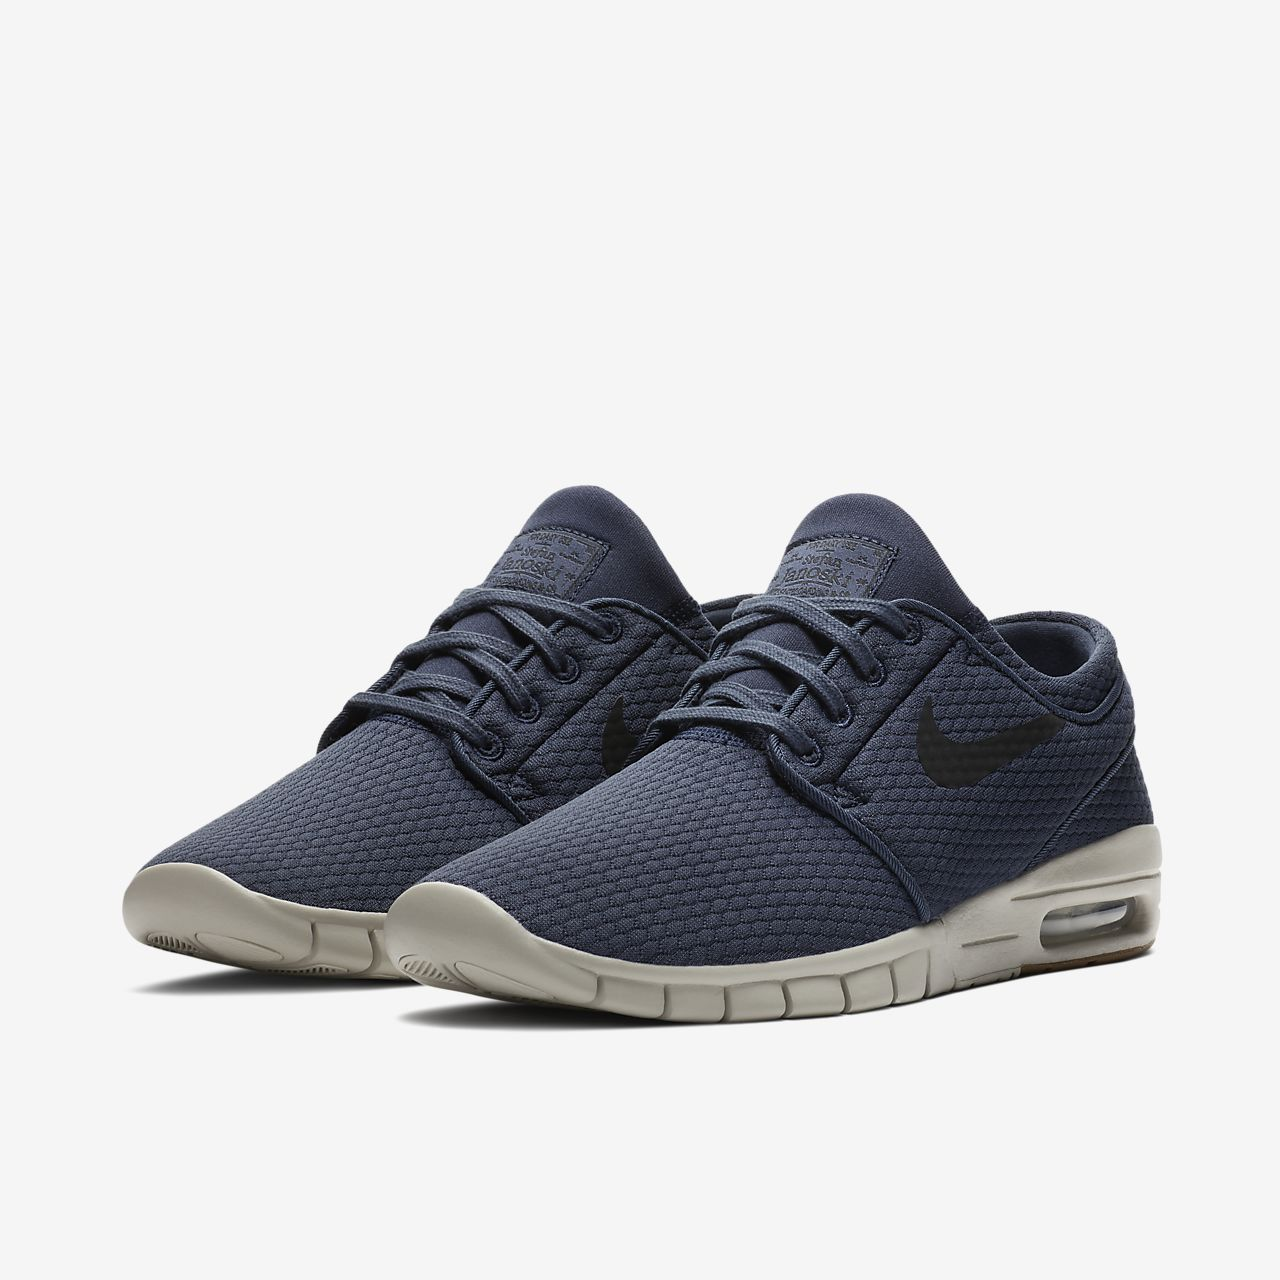 nike sb stefan janoski max men 39 s skateboarding shoe nike. Black Bedroom Furniture Sets. Home Design Ideas